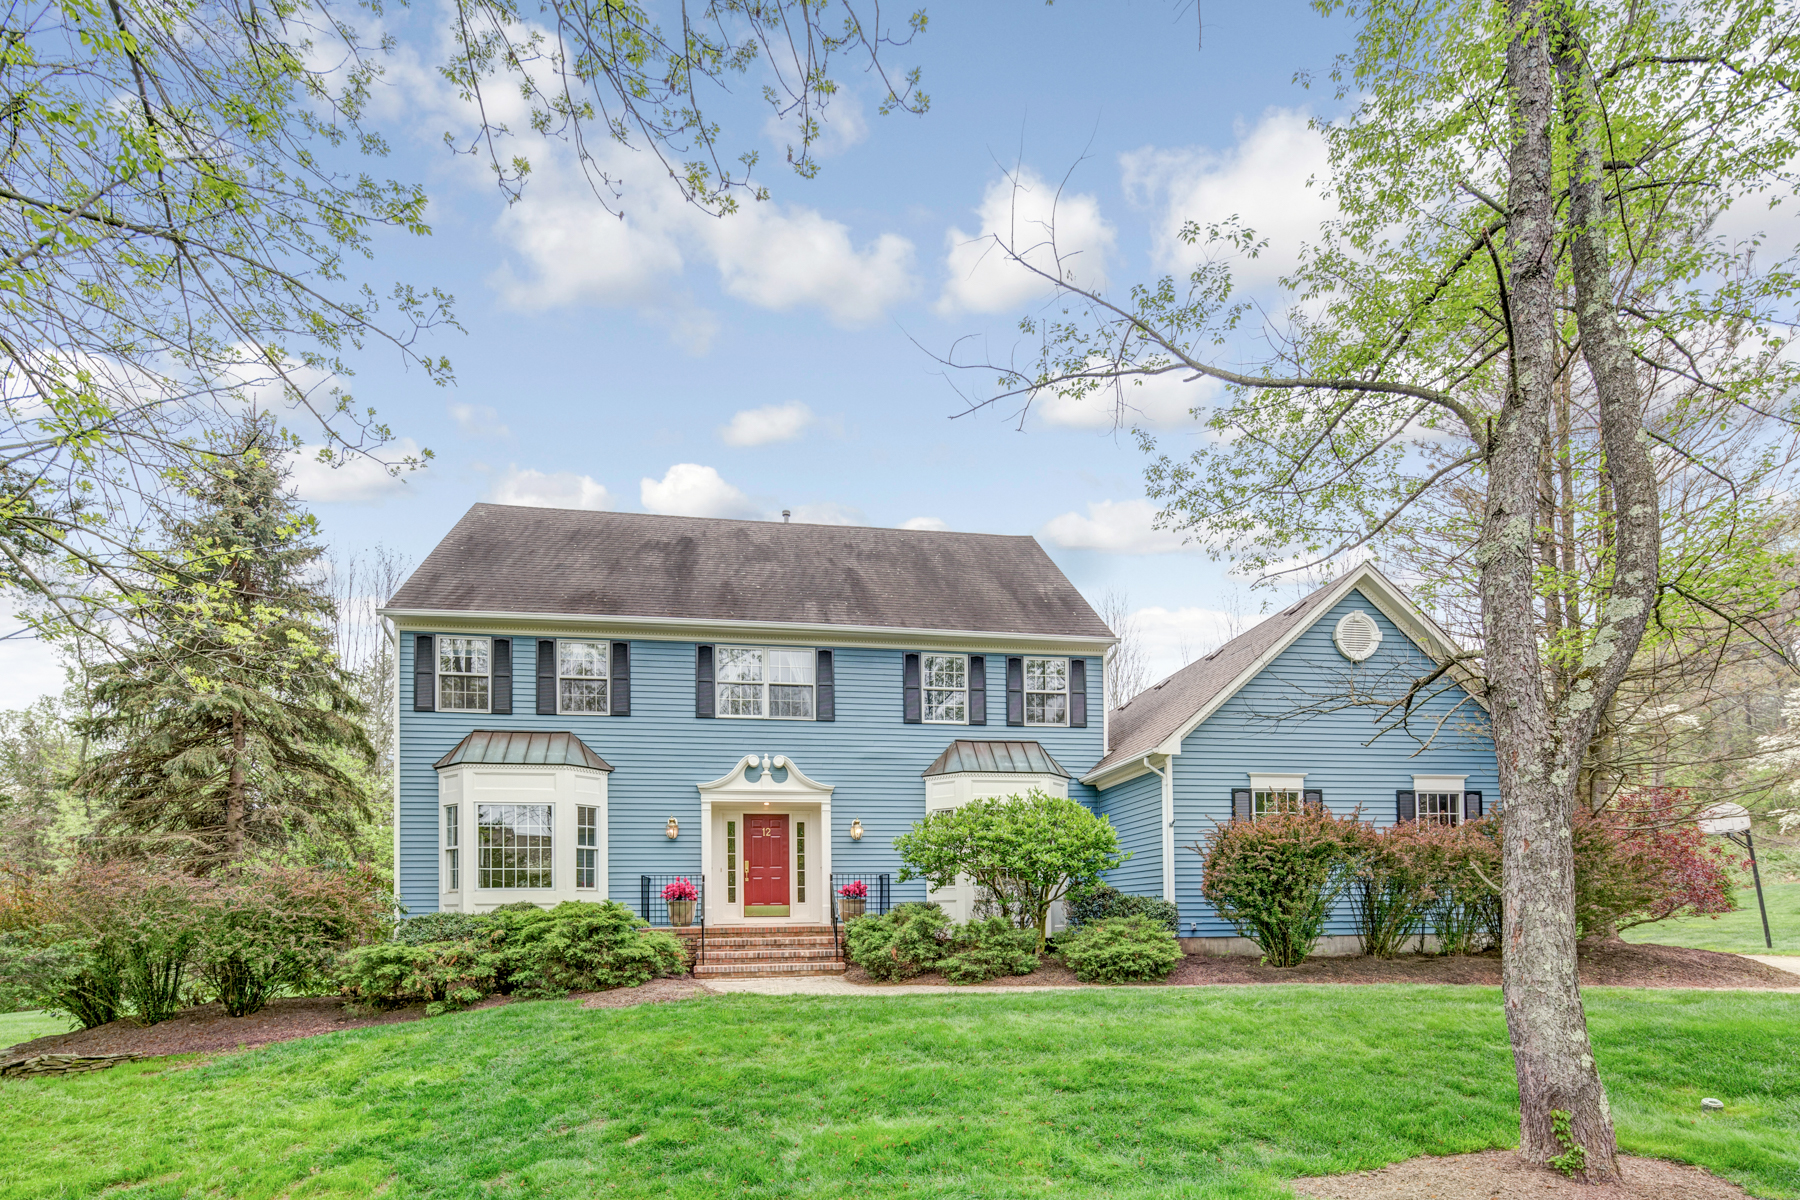 Maison unifamiliale pour l Vente à Beautifully Appointed Colonial 12 Charter Court Basking Ridge, New Jersey 07920 États-Unis